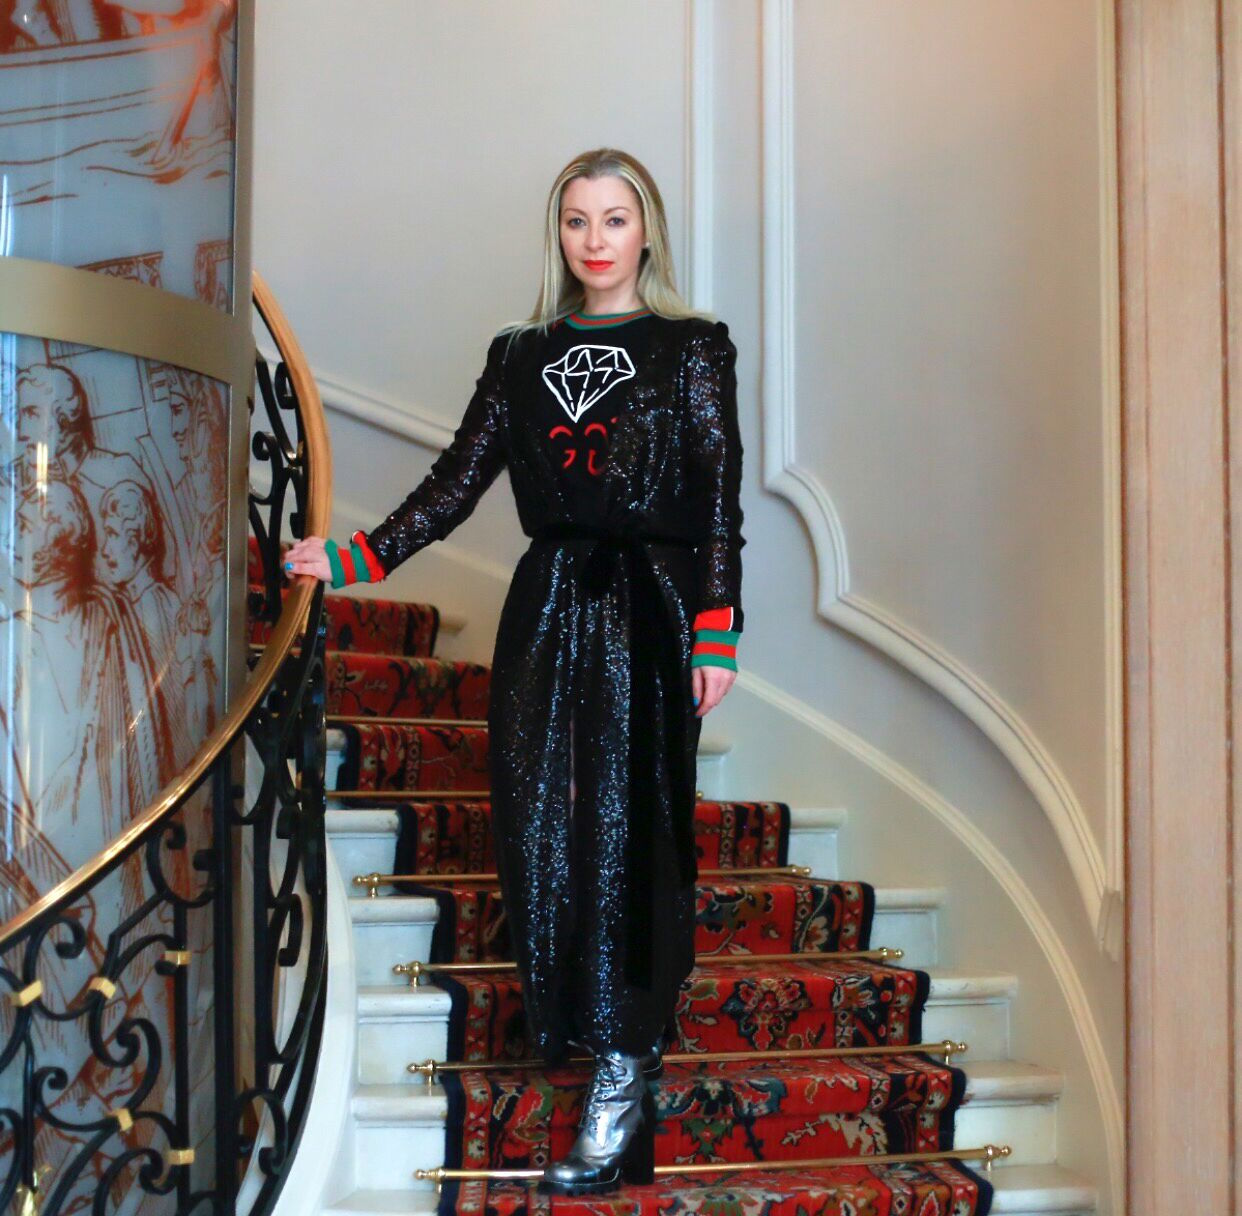 Sonya Molodetskaya on the stairs of the Ritz in Paris